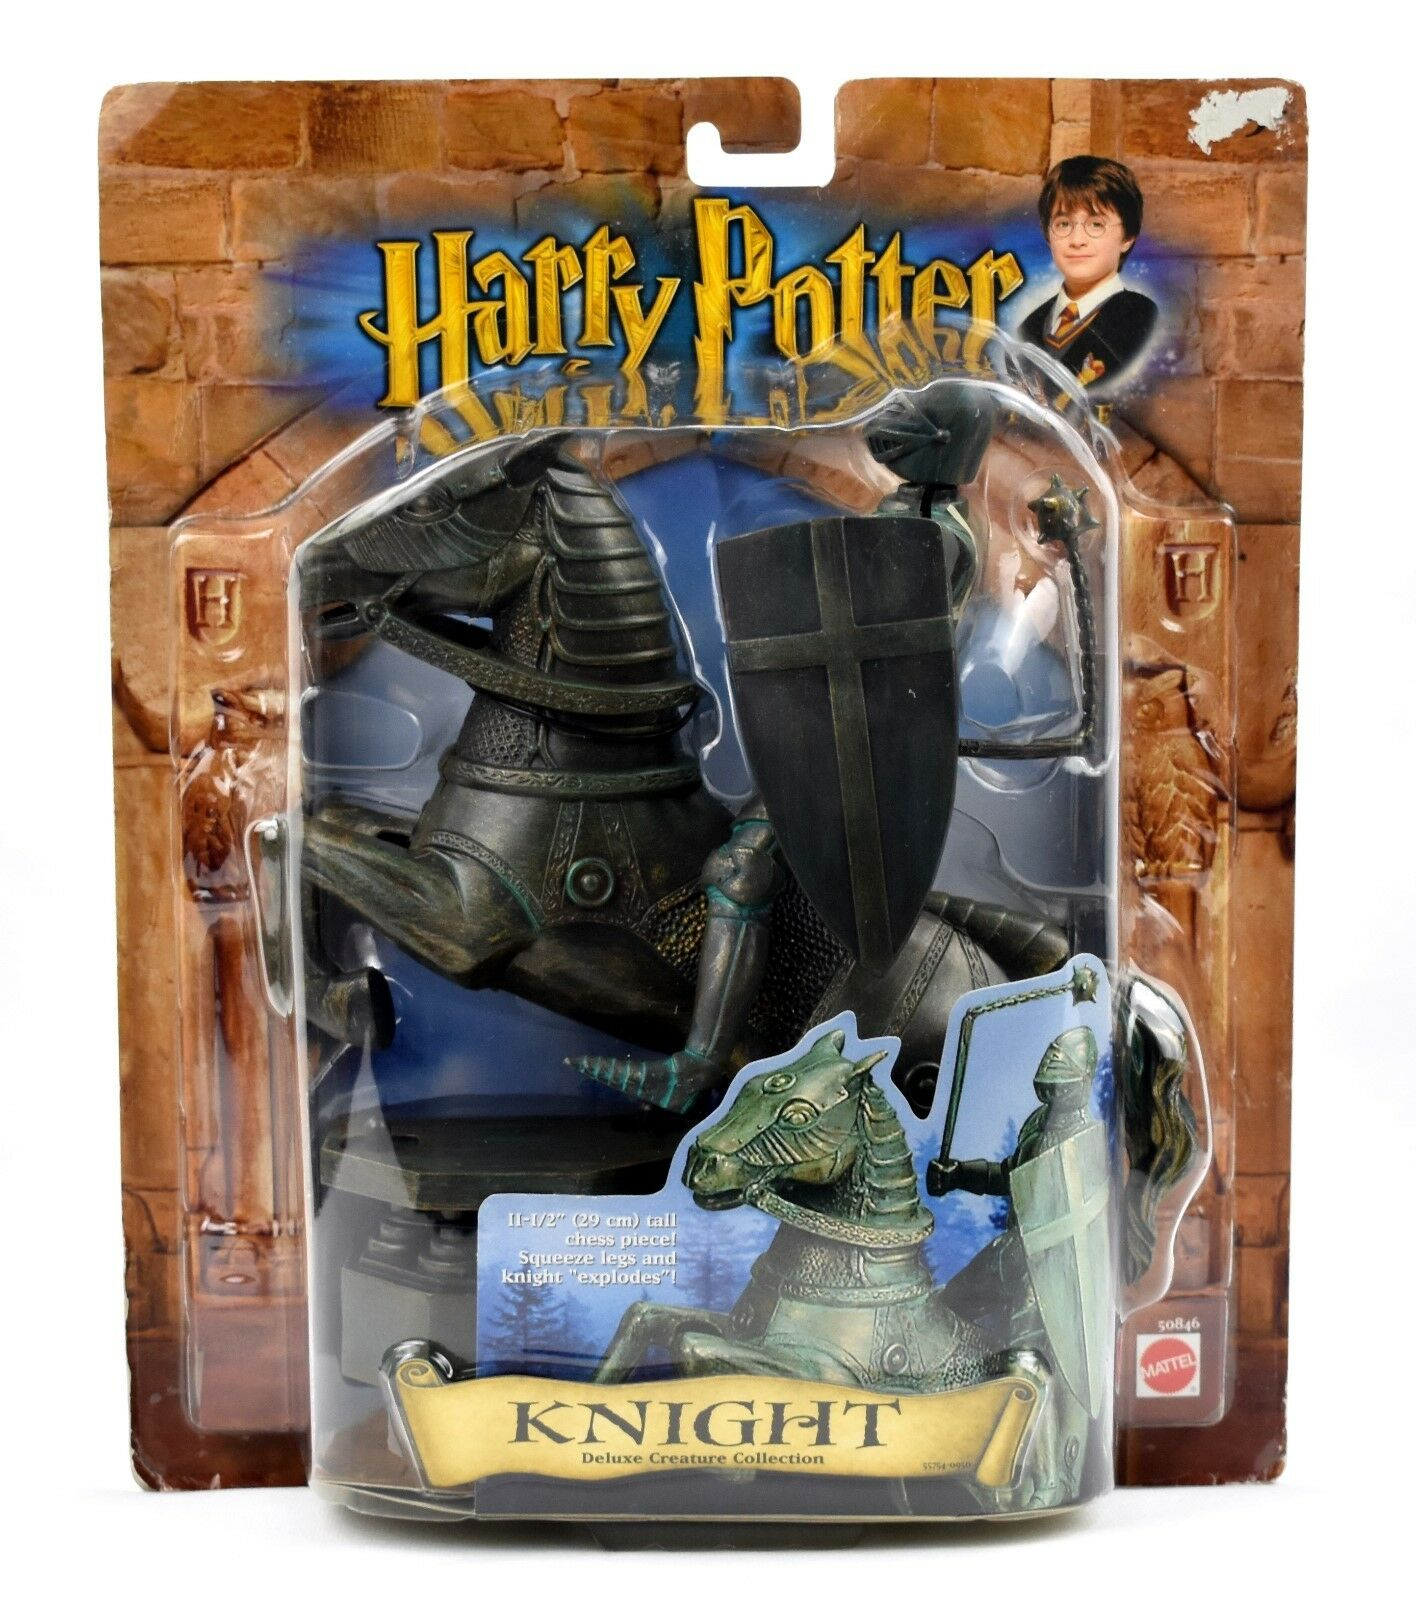 Harry Potter and The Sorcerer's Stone - Knight Deluxe Creature Action Figure